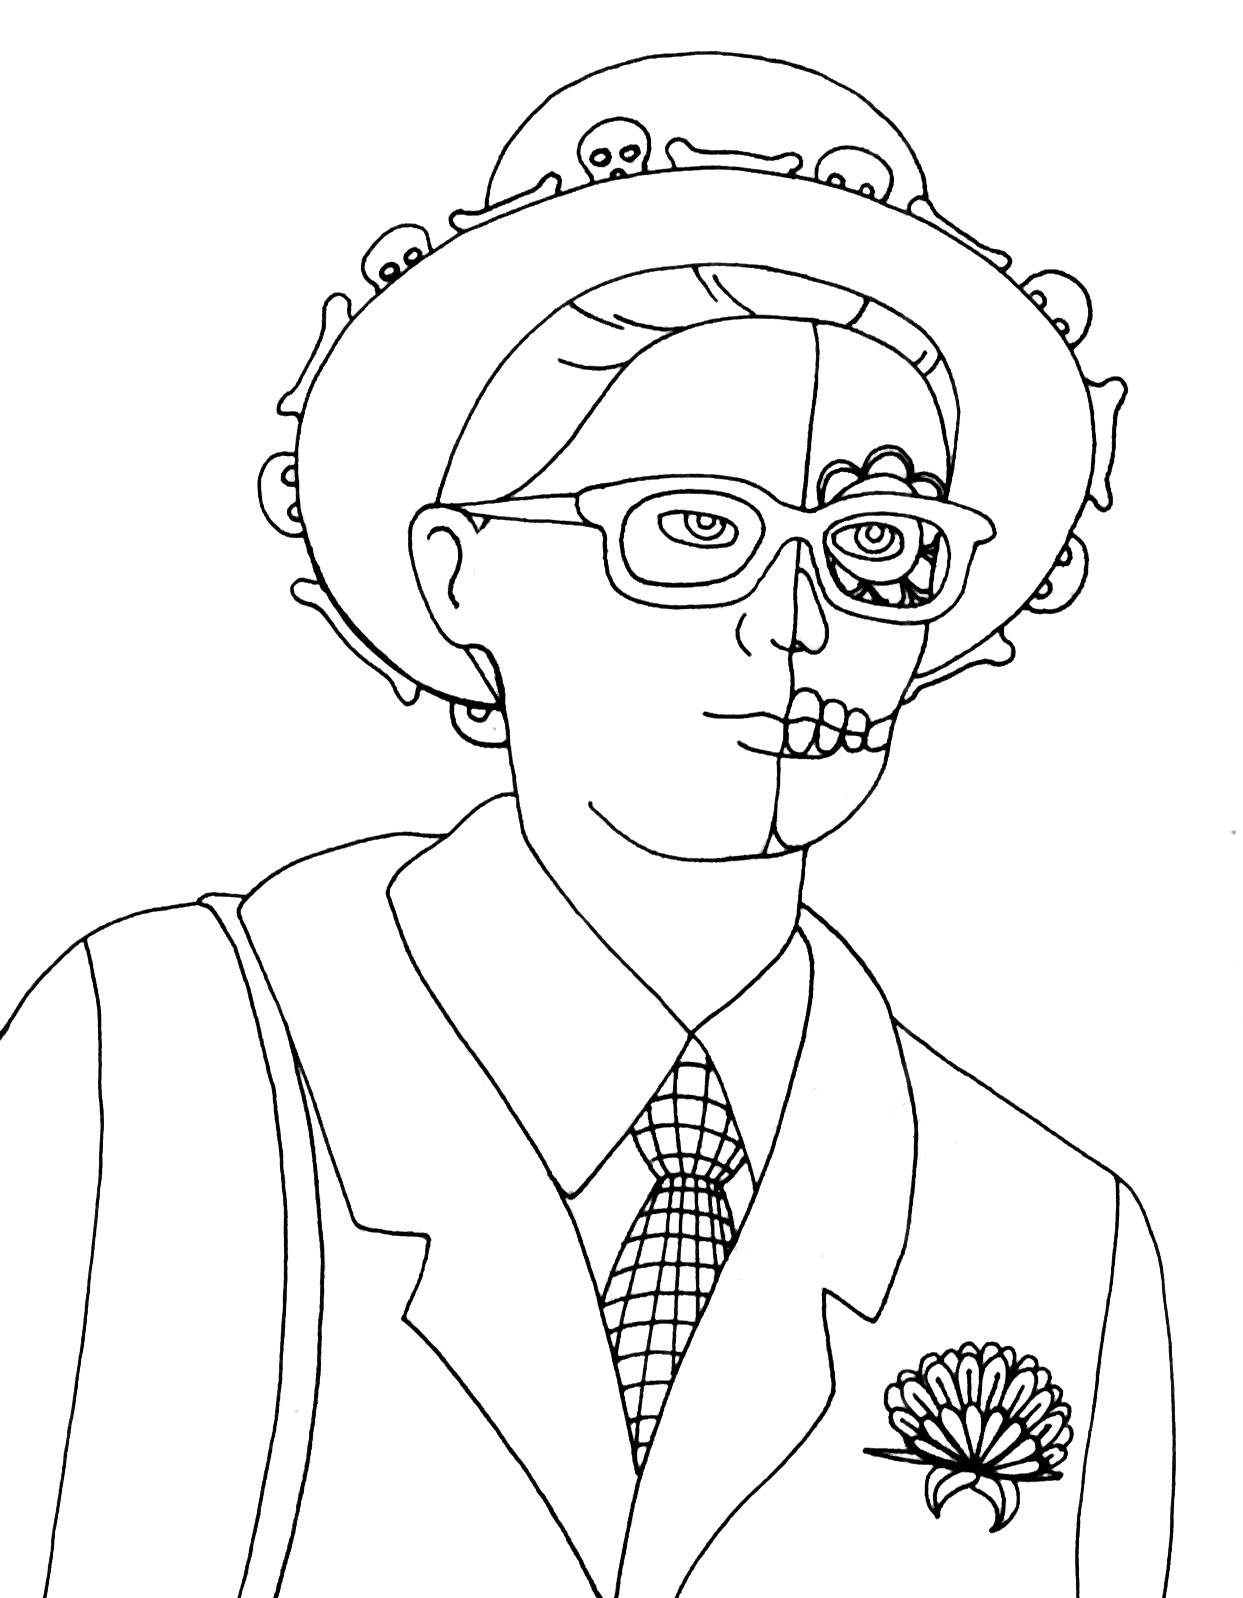 people coloring yucca flats nm wenchkin39s coloring pages parade people coloring